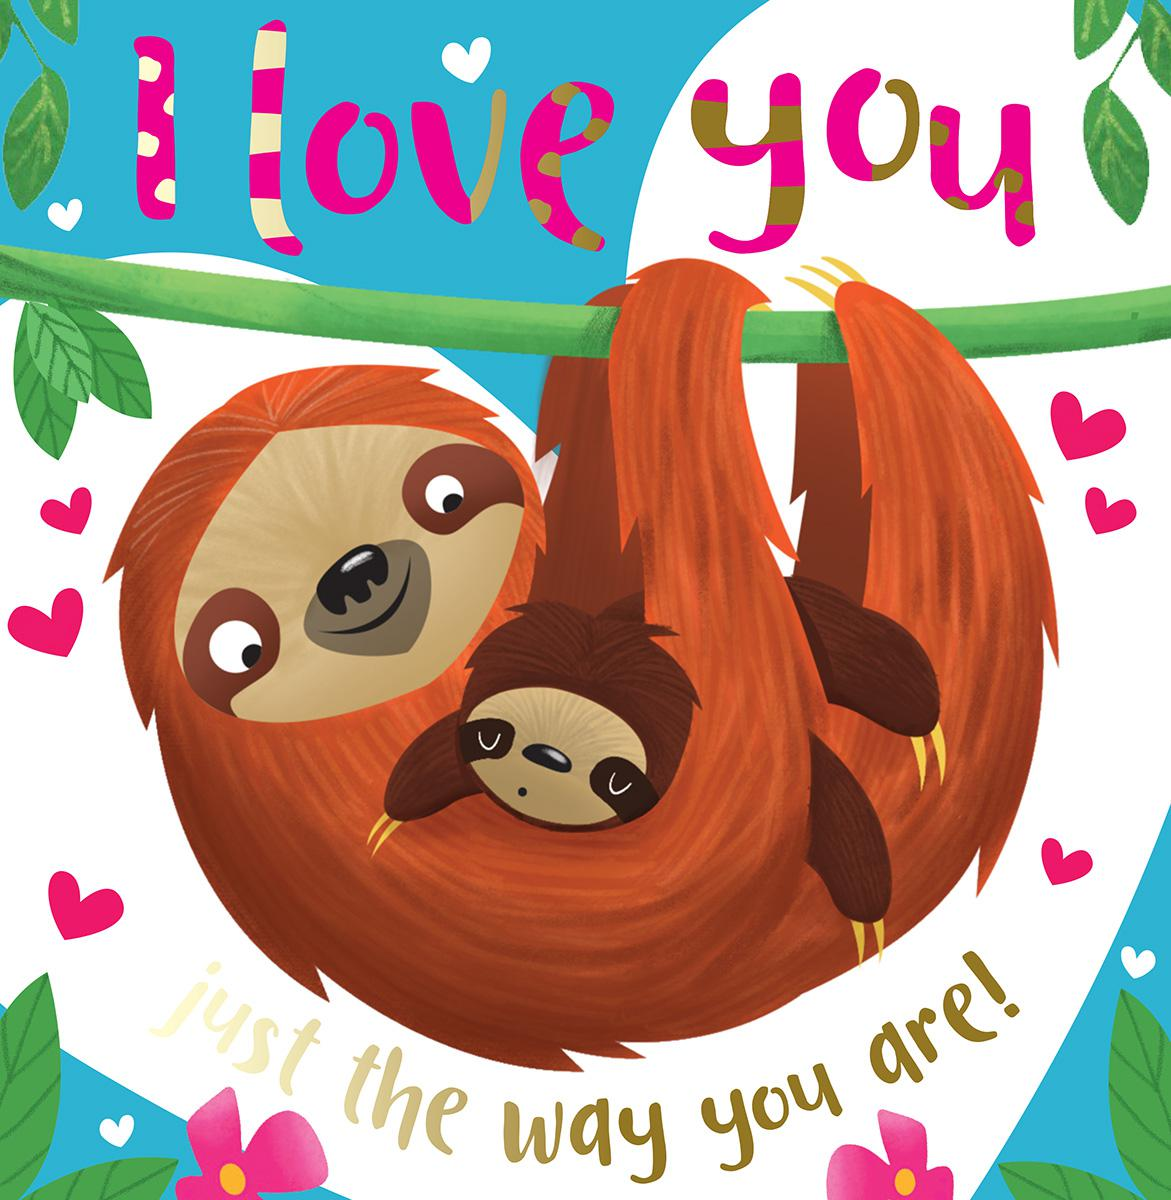 I Love You Just the Way You Are!